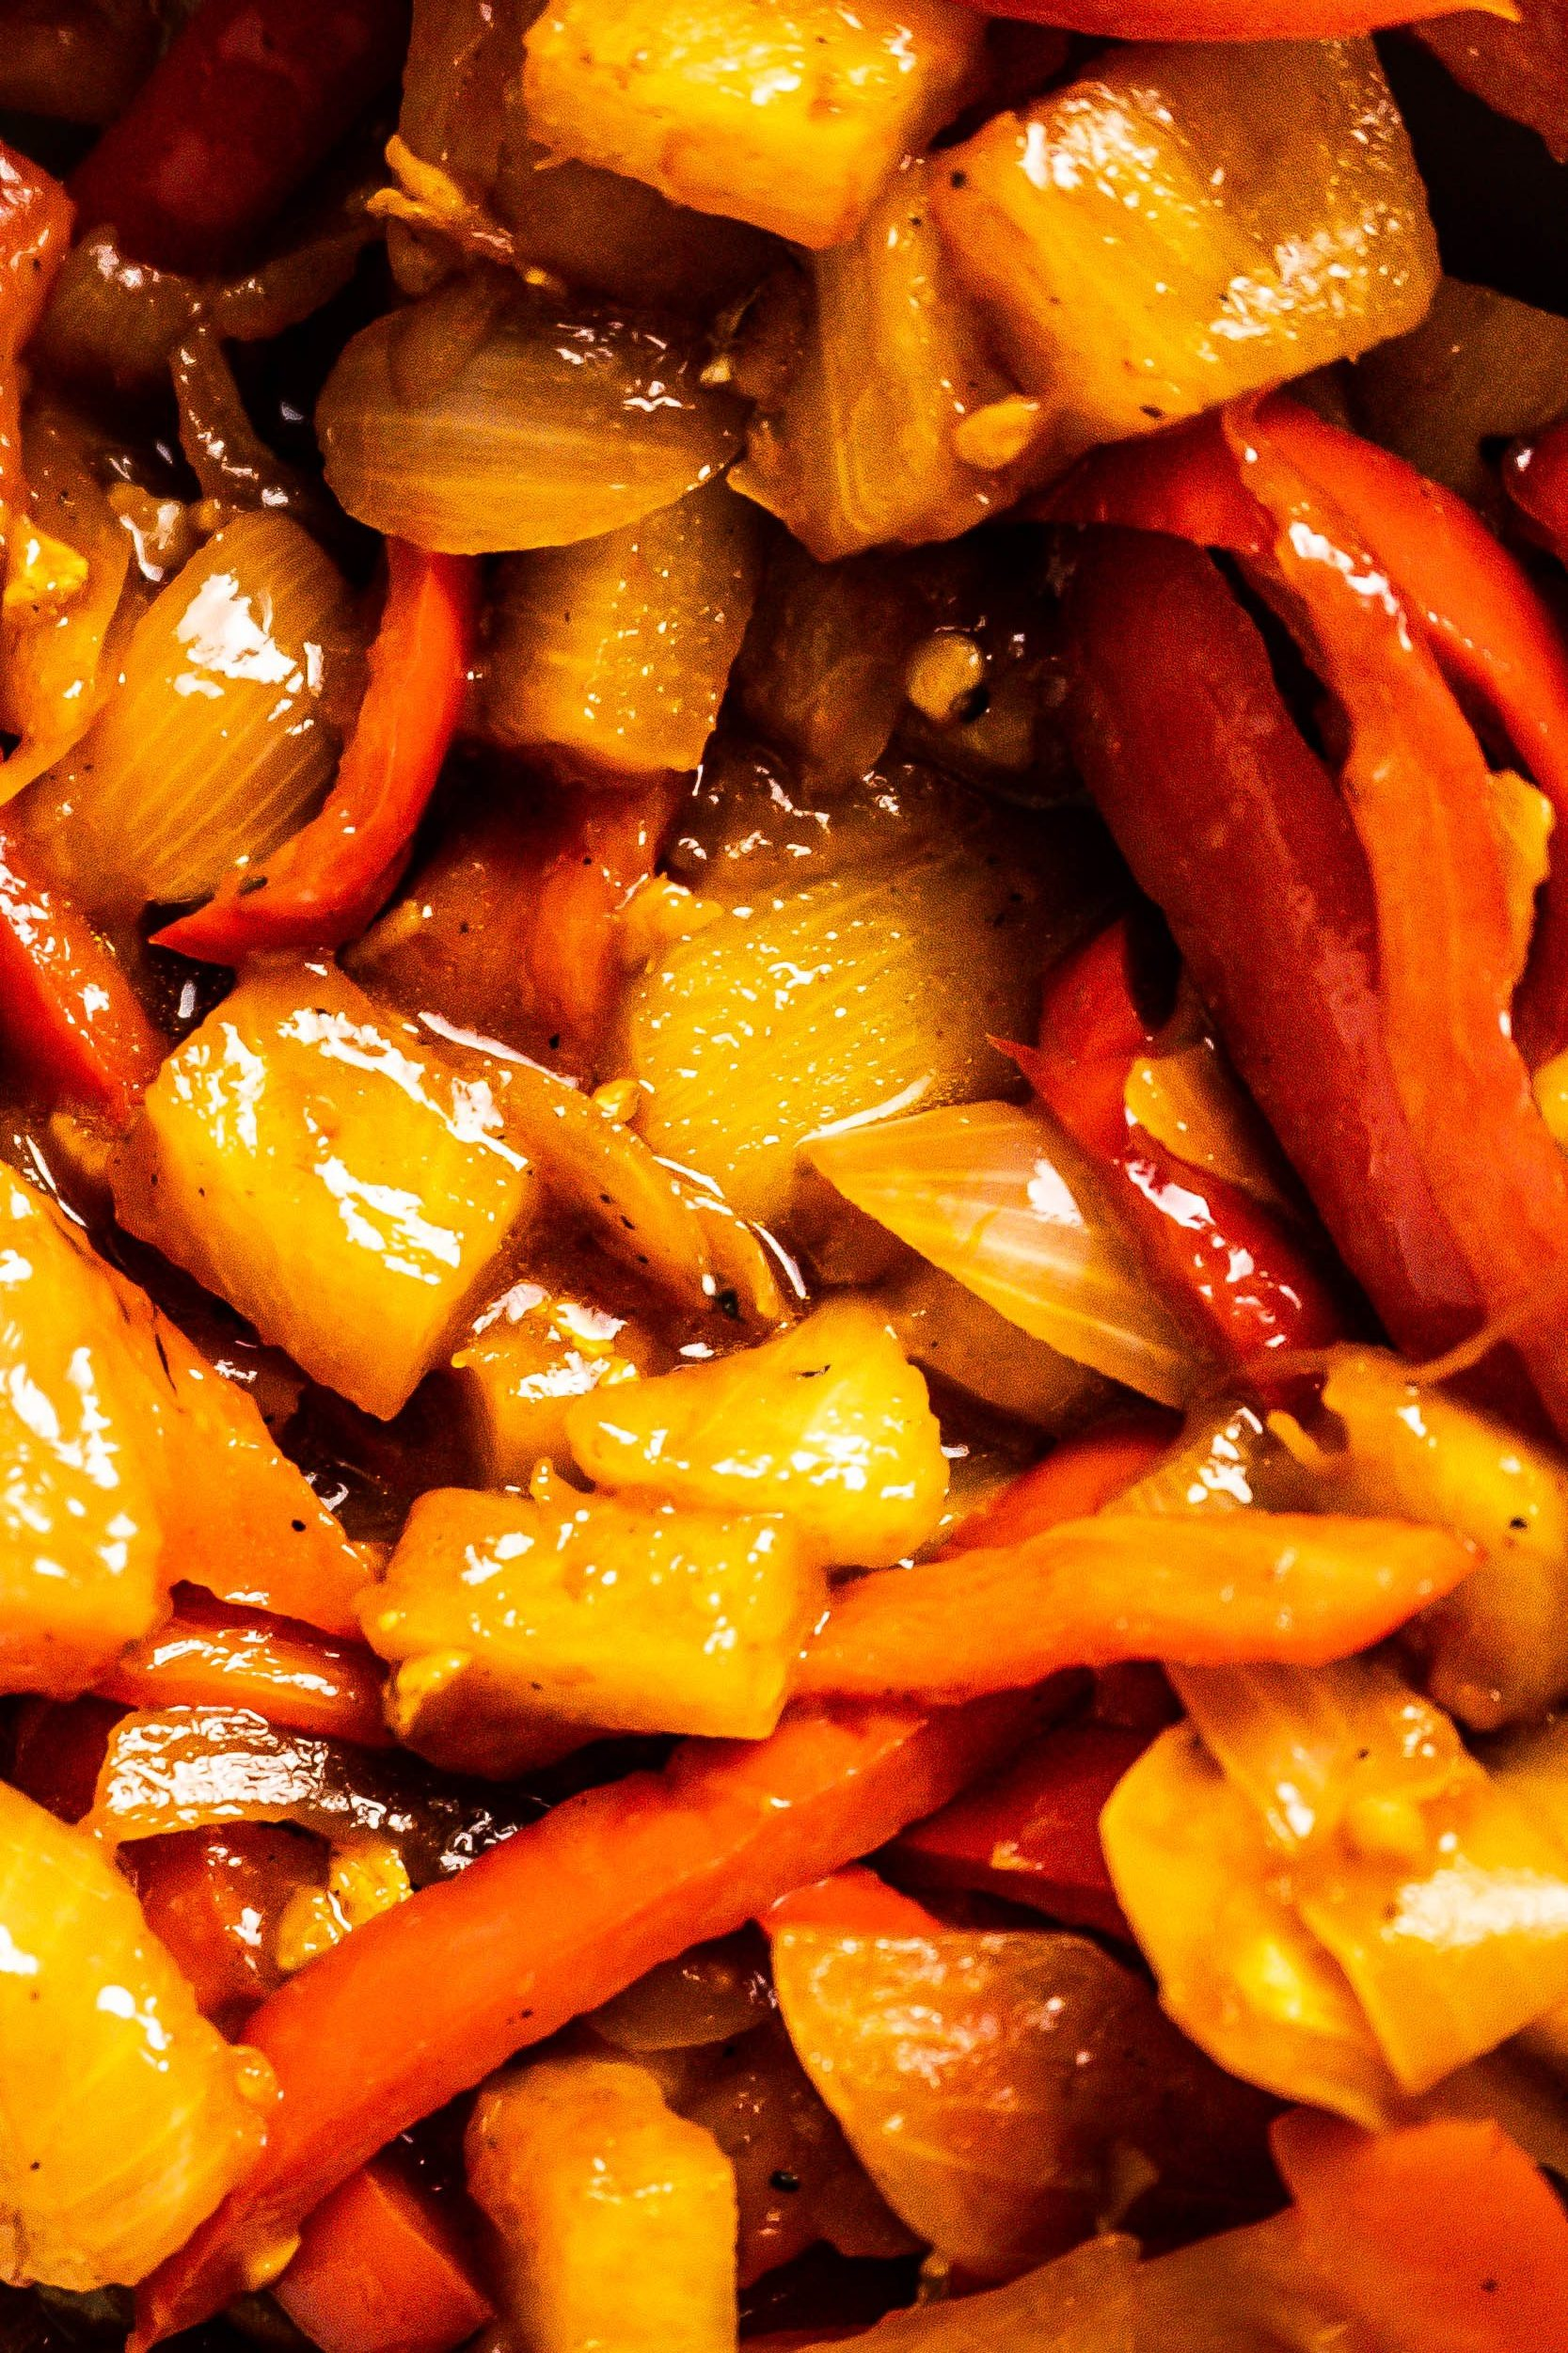 Chinese Sweet and Sour (Sauce) photographed up close